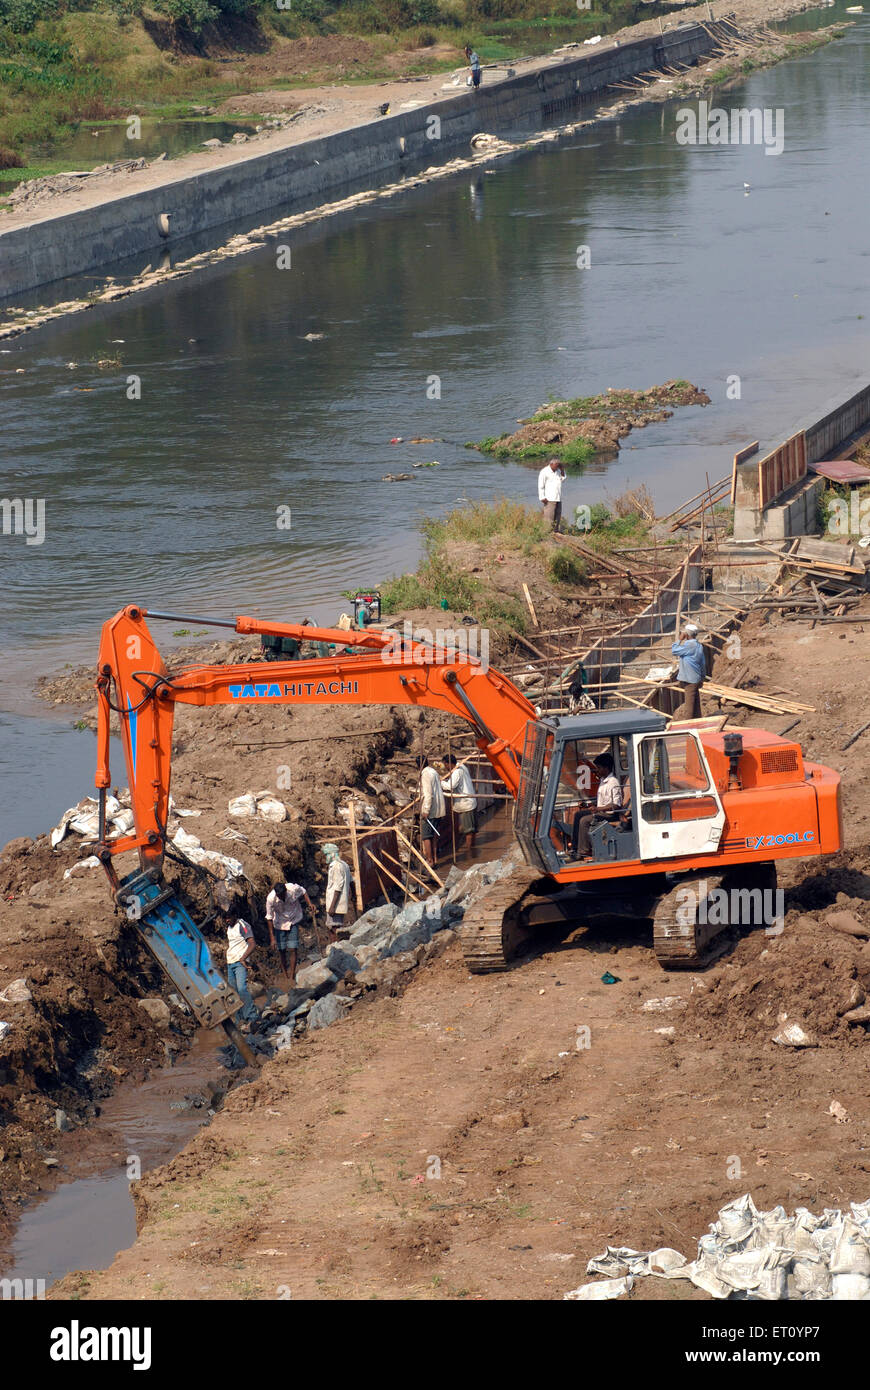 Excavator and digger Bulldozer of TATA HITACHI EX 200 LC heavy machinery ;  excavation work at bank of river Mutha - Stock Image